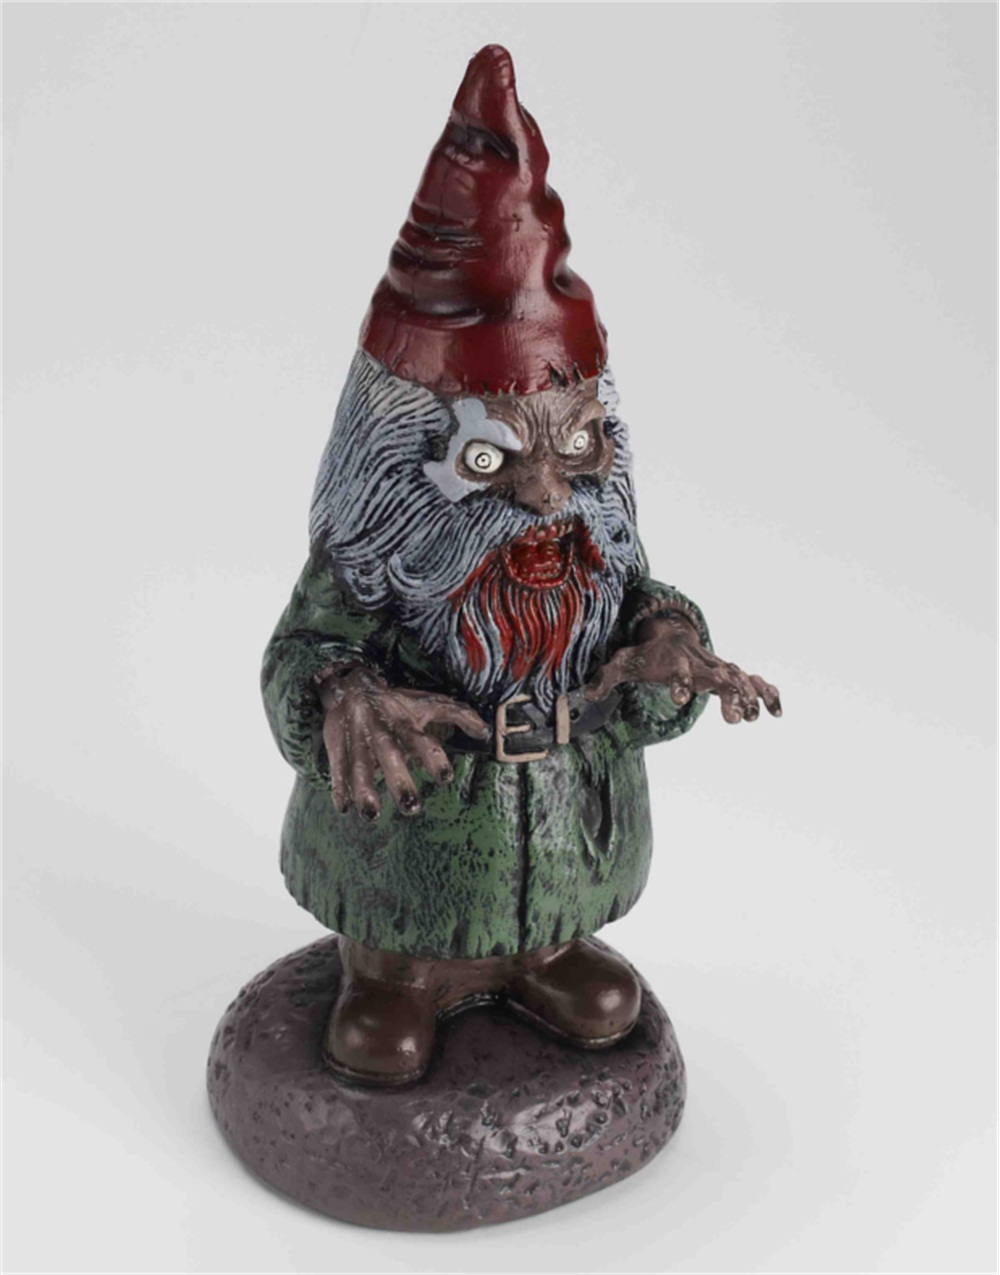 17 zombie garden gnome halloween decoration yard ornament ebay for Gnome 3 decoration fenetre